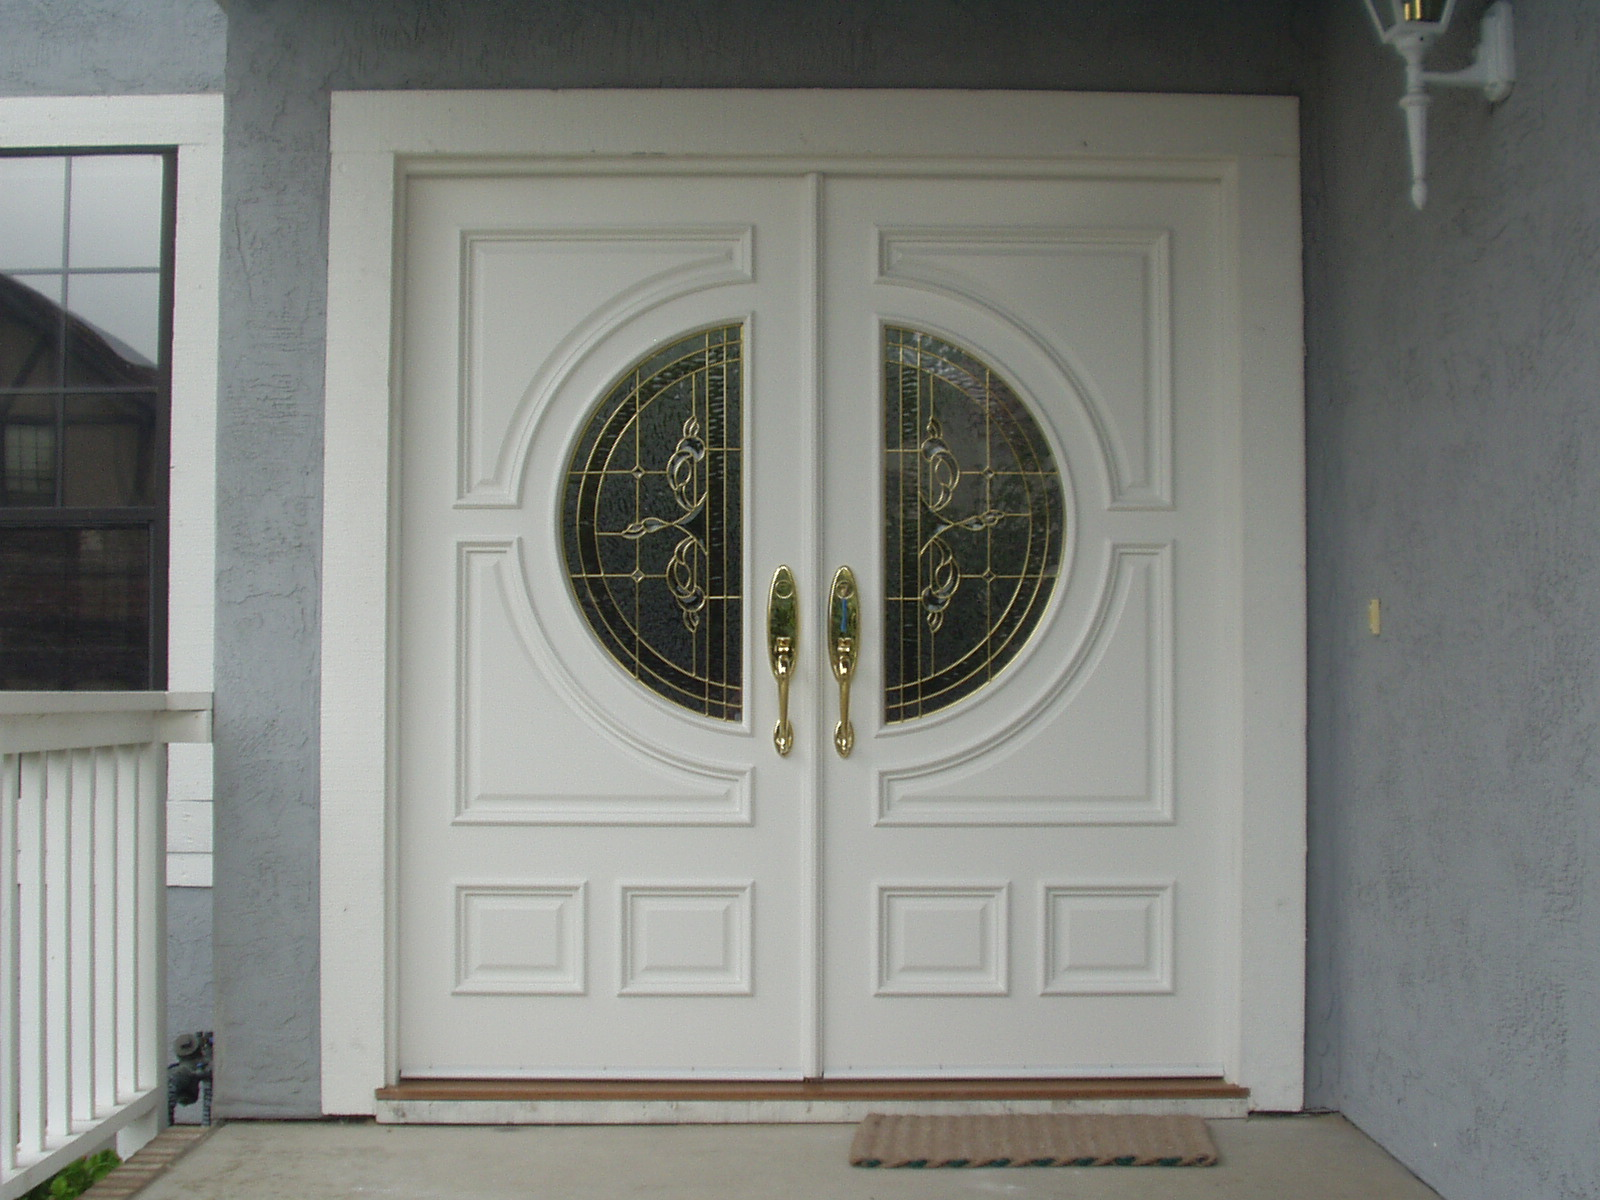 Inspiring Double Entry Doors For Home With Clear Design: White Double Entry Doors